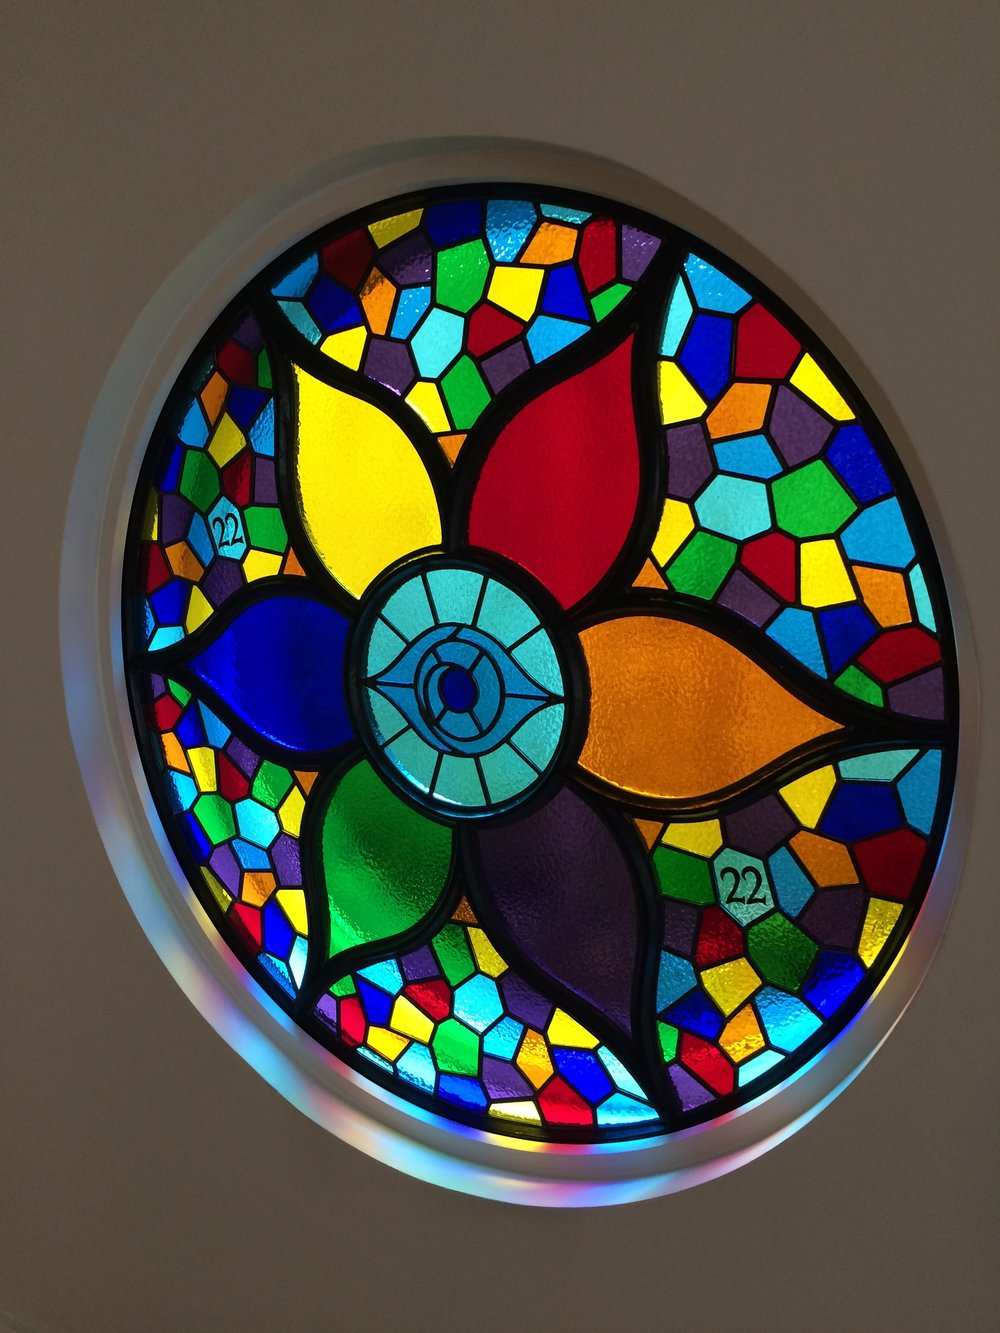 Circular frame with stained glass